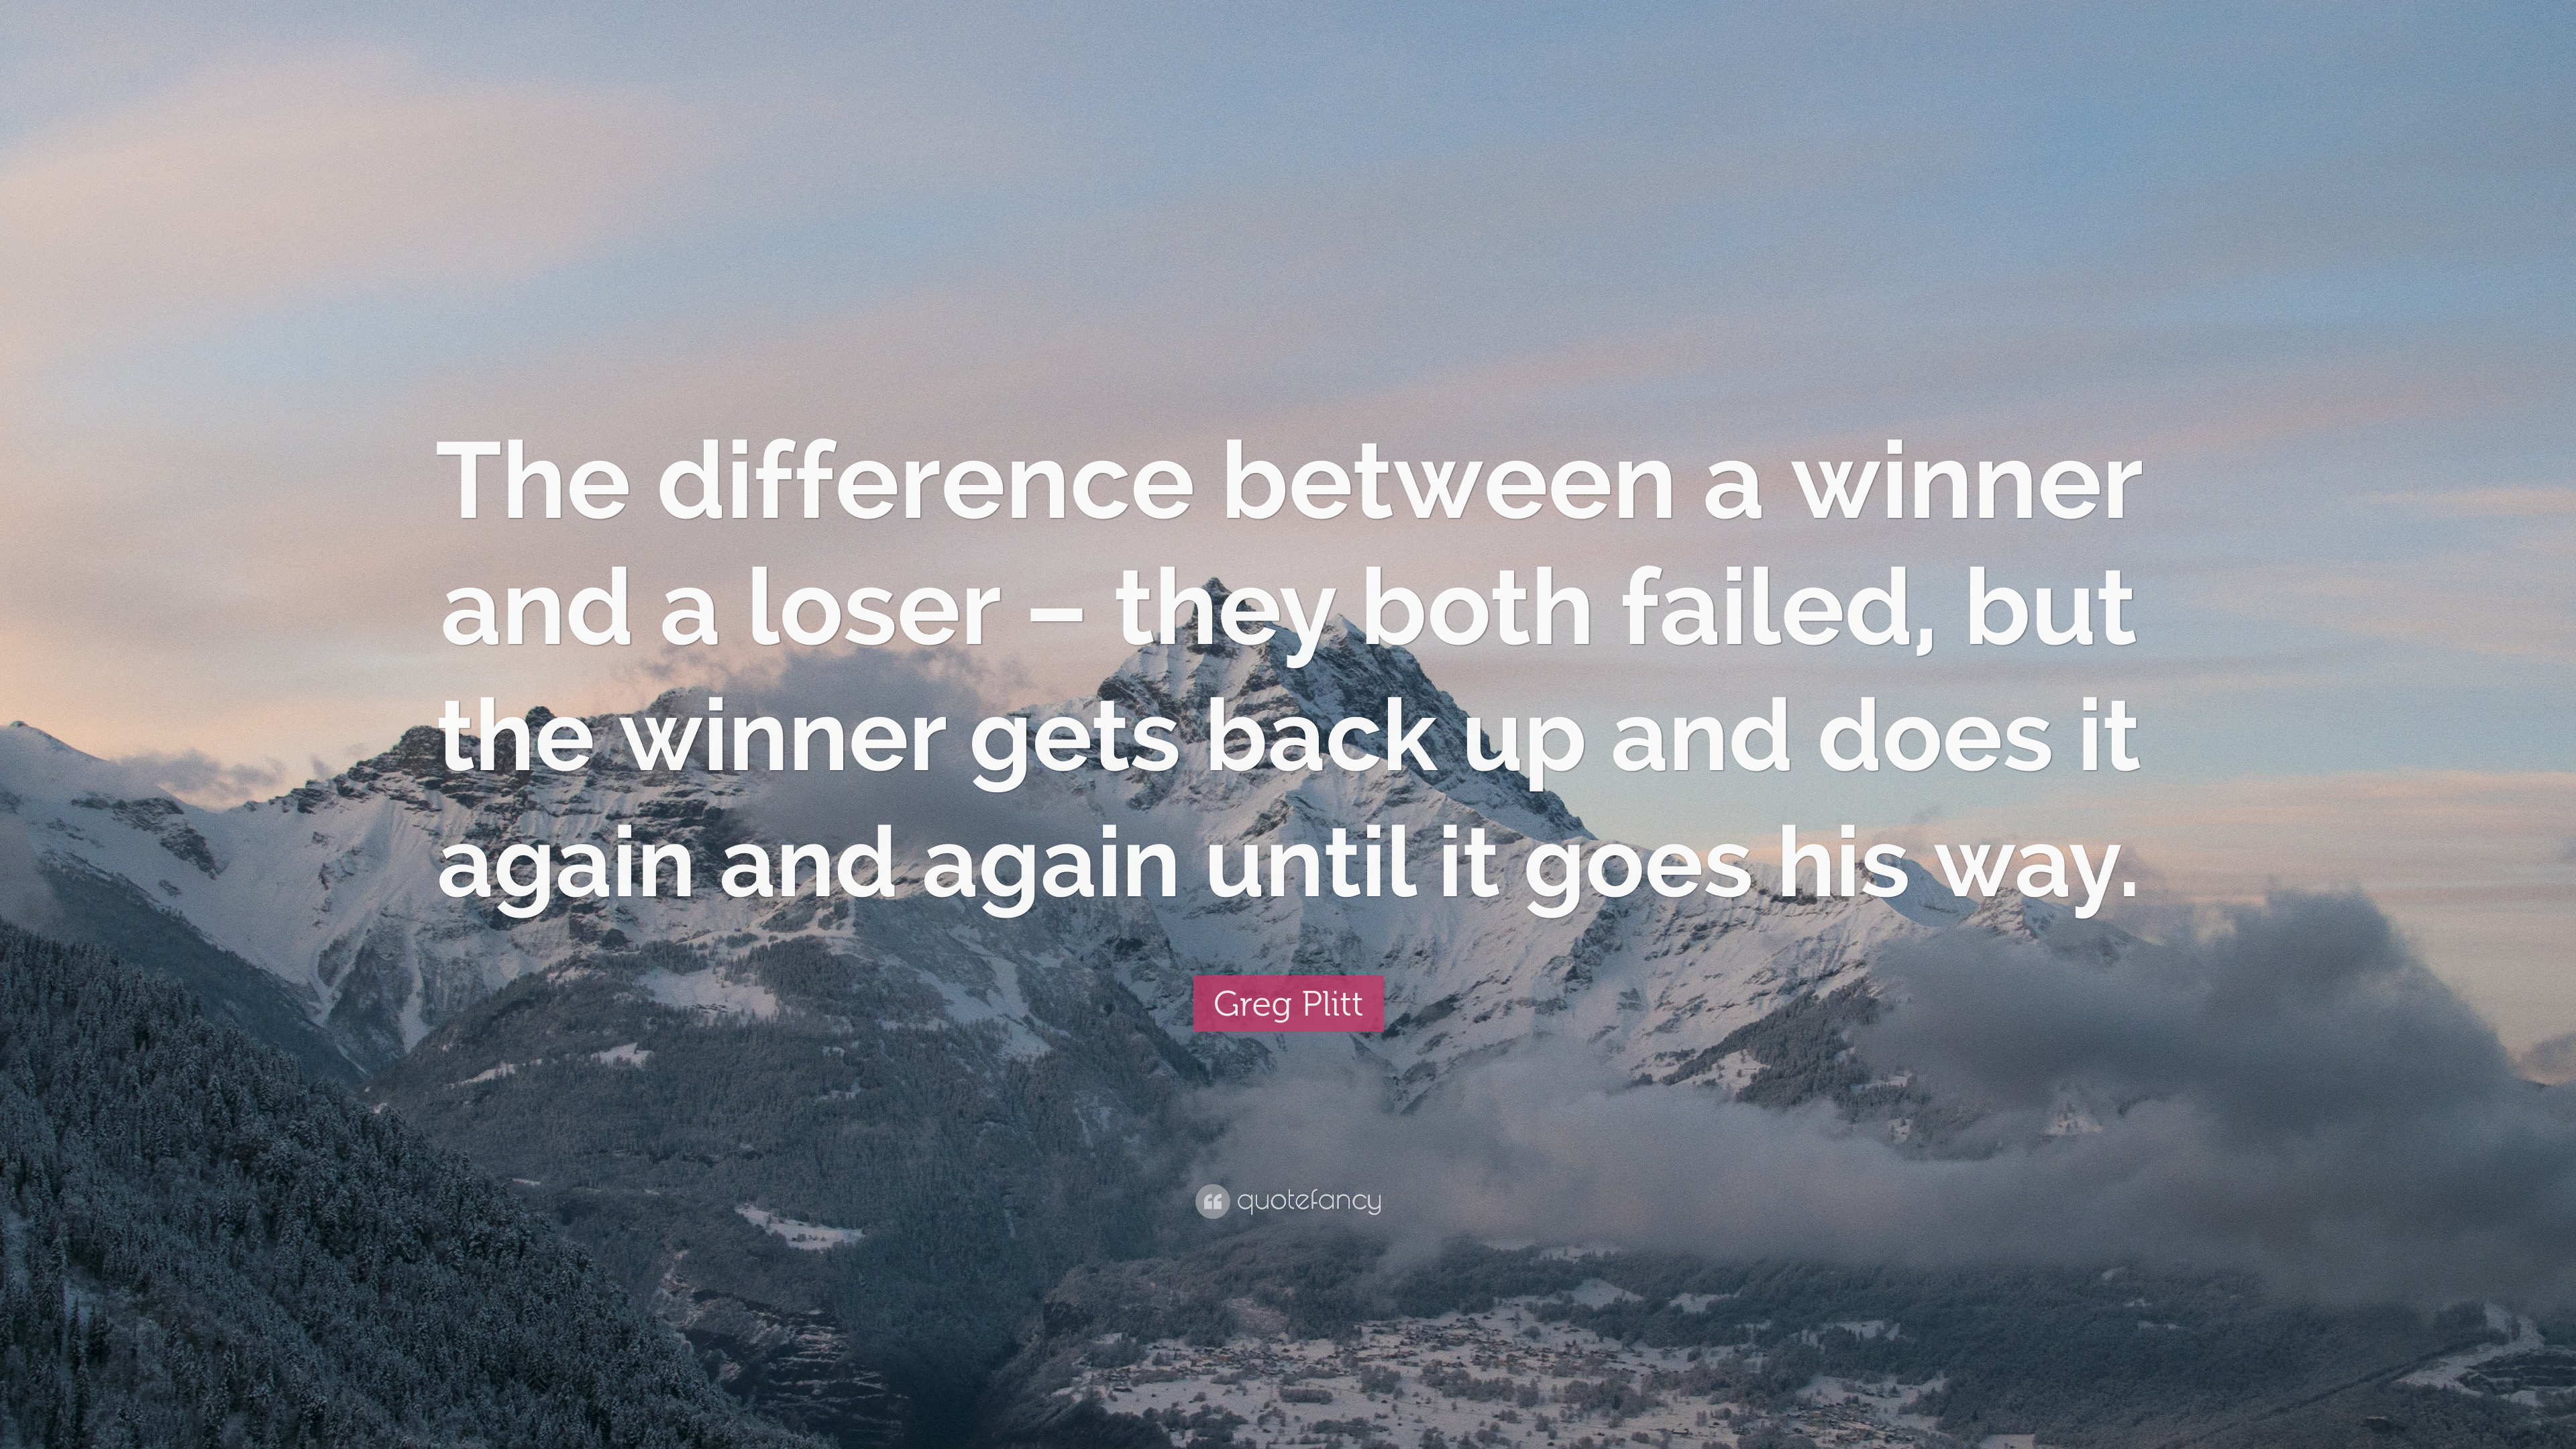 Greg Plitt Quotes Wallpaper Greg Plitt Quote The Difference Between A Winner And A